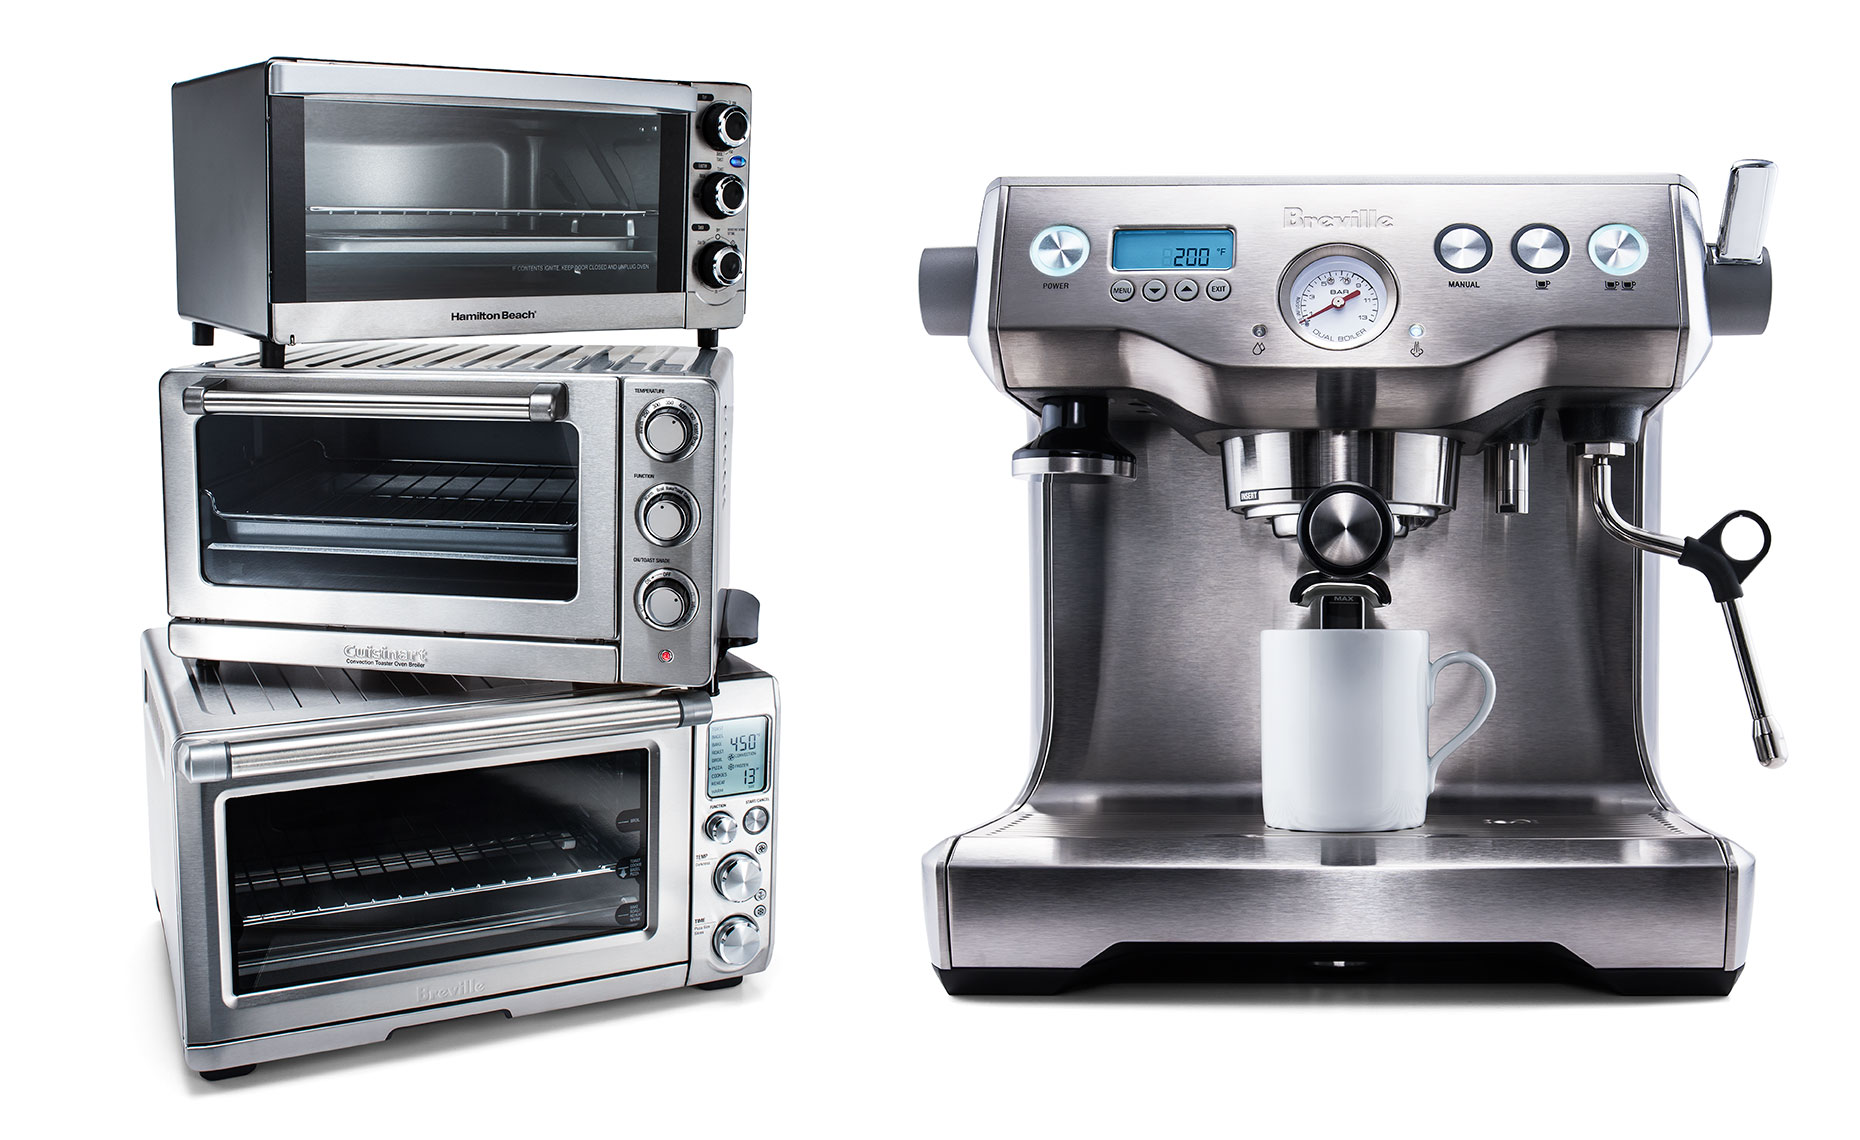 Hamilton beach toaster ovens and Breville Espresso maker